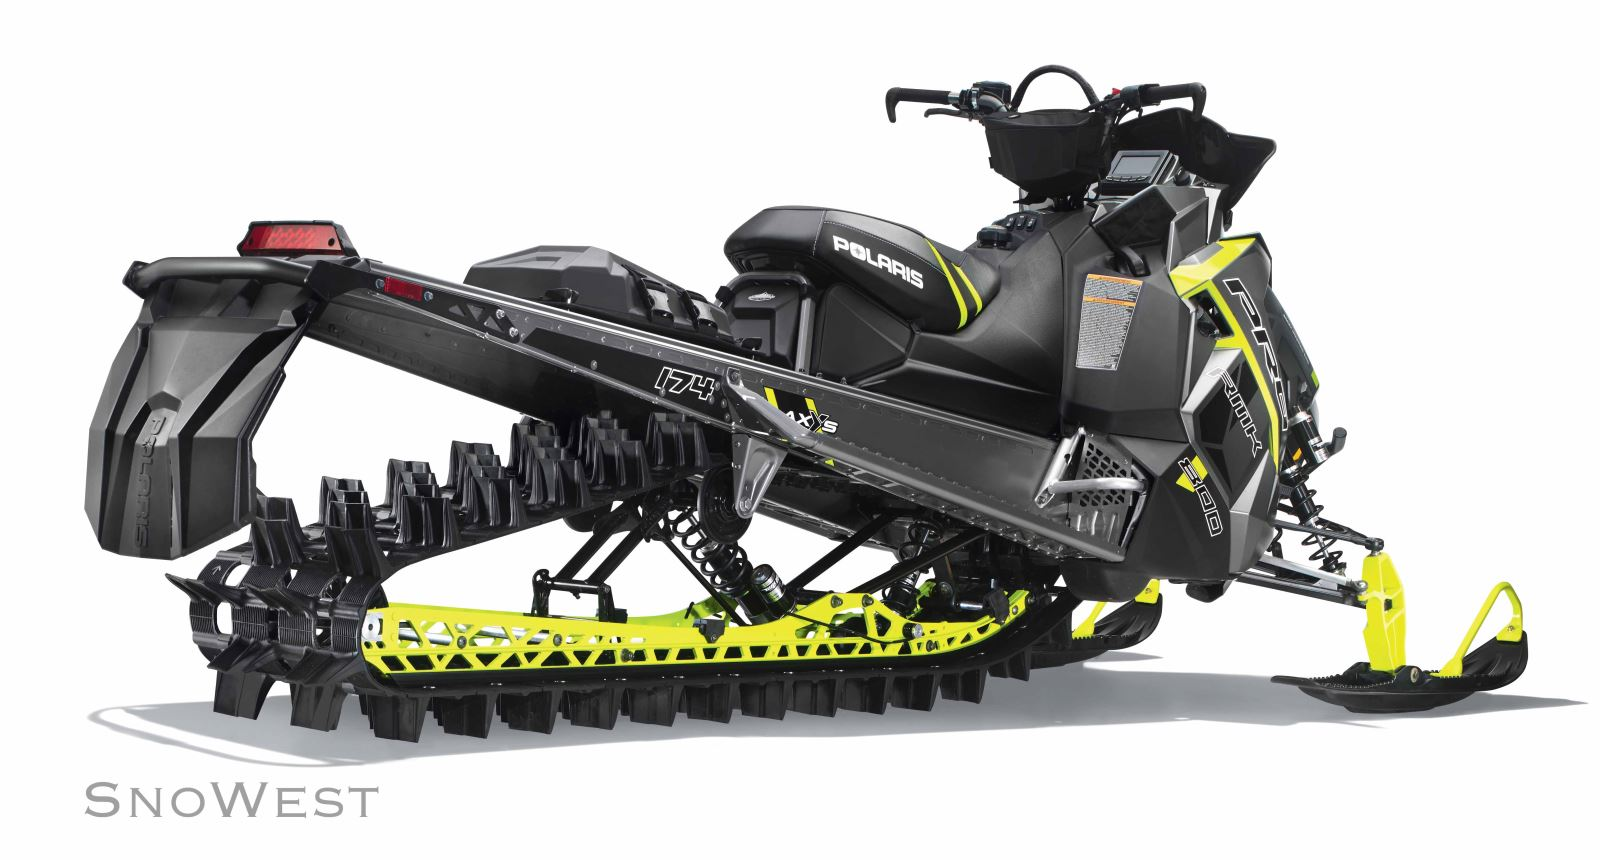 Polaris 2017 Everything You Need To Know About The Rmk Mountain Sleds Snowest Magazine